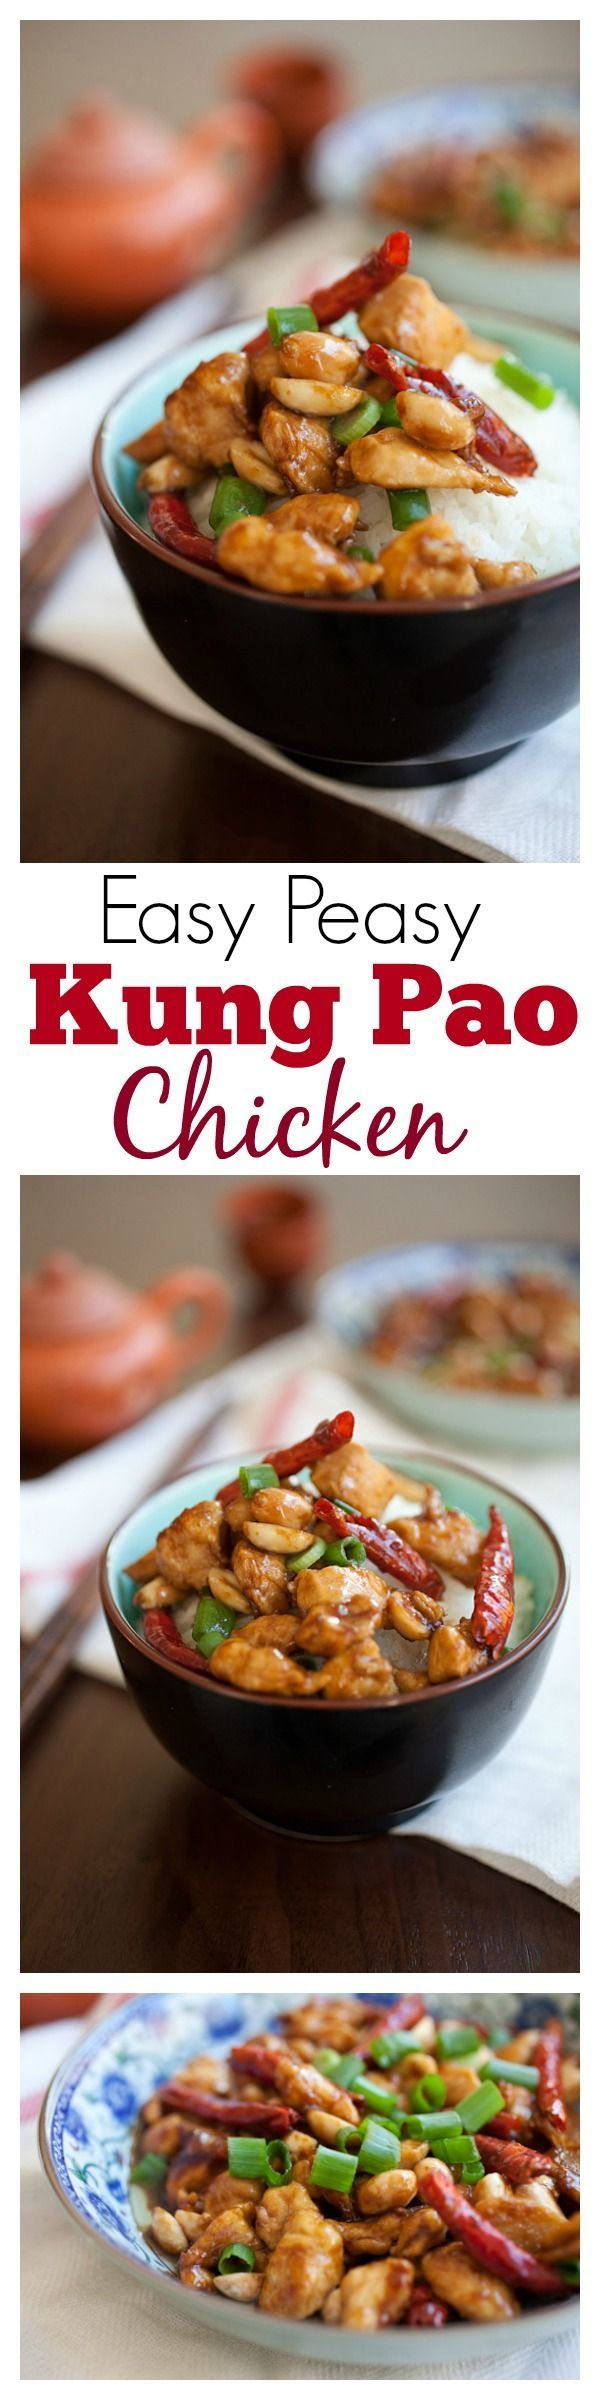 Kung Pao Chicken - best-ever kung pao chicken, easy recipe that tastes much BETTER than takeout   rasamalaysia.com